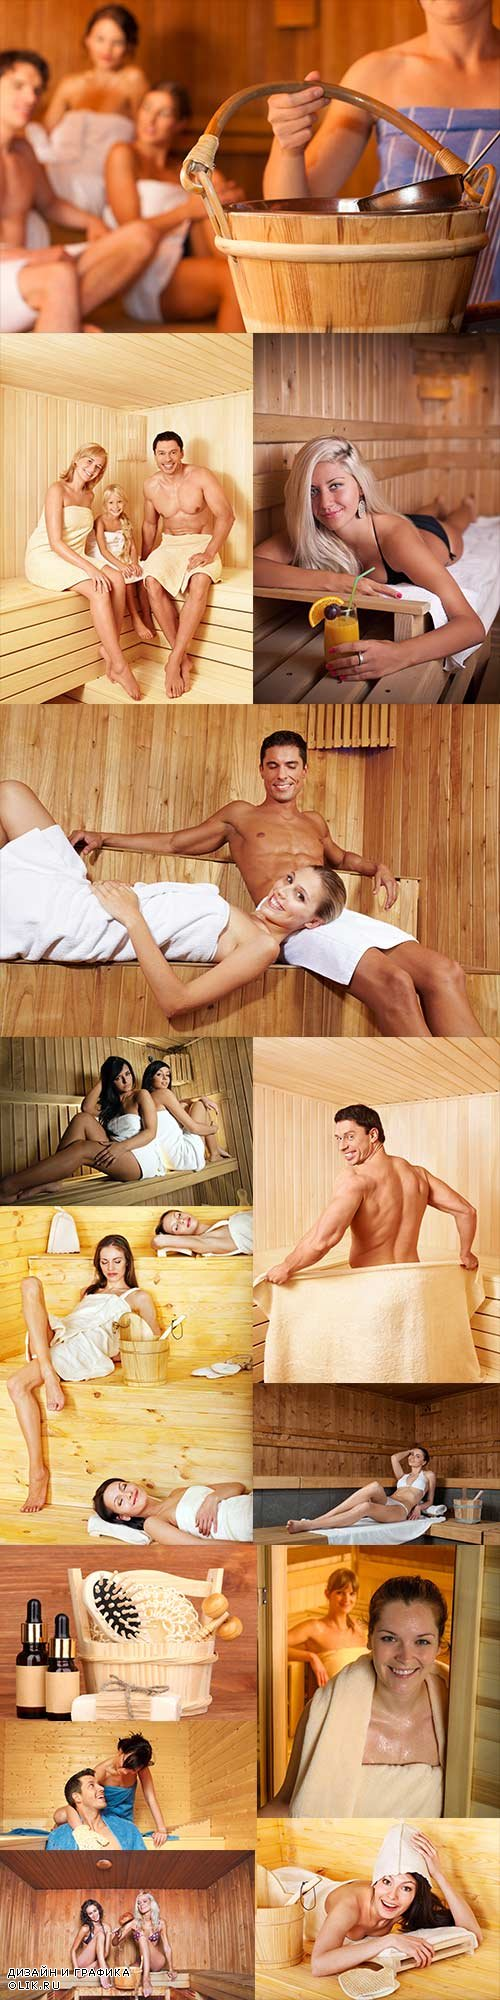 Sauna raster graphics